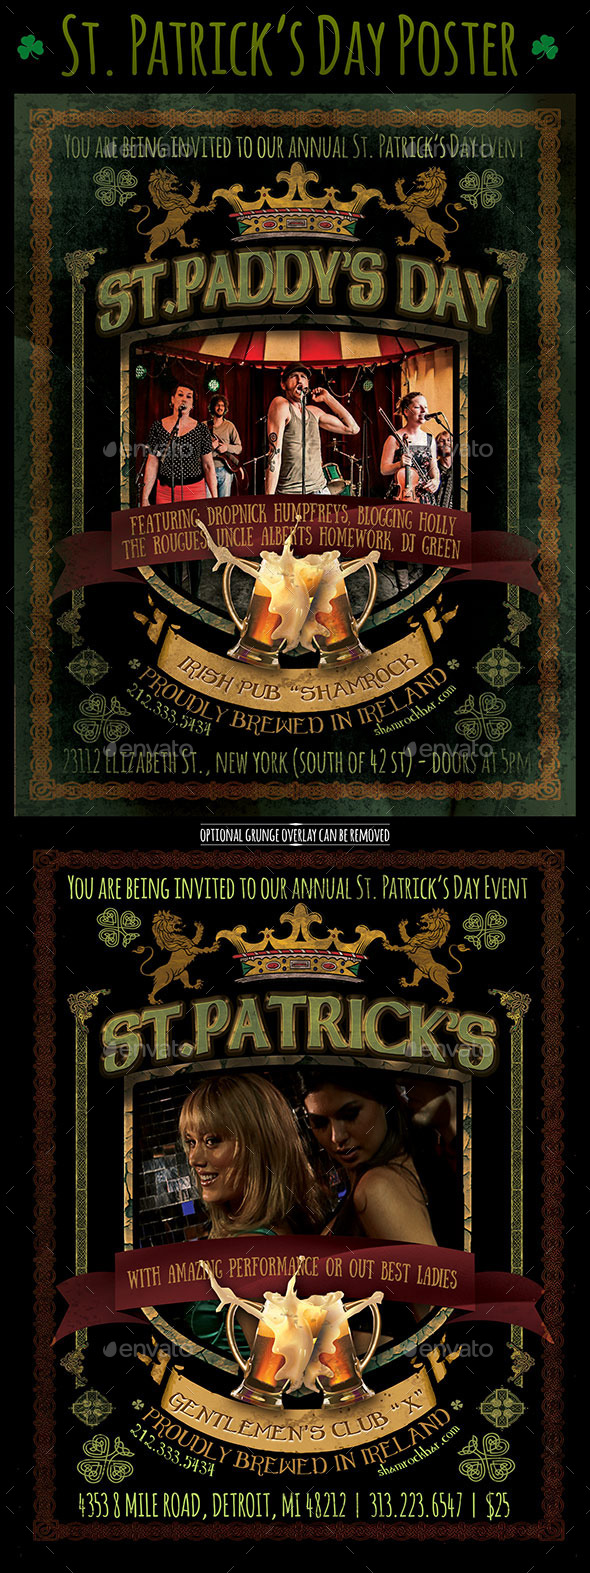 St. Patricks Day Poster - St Paddys - Holidays Events